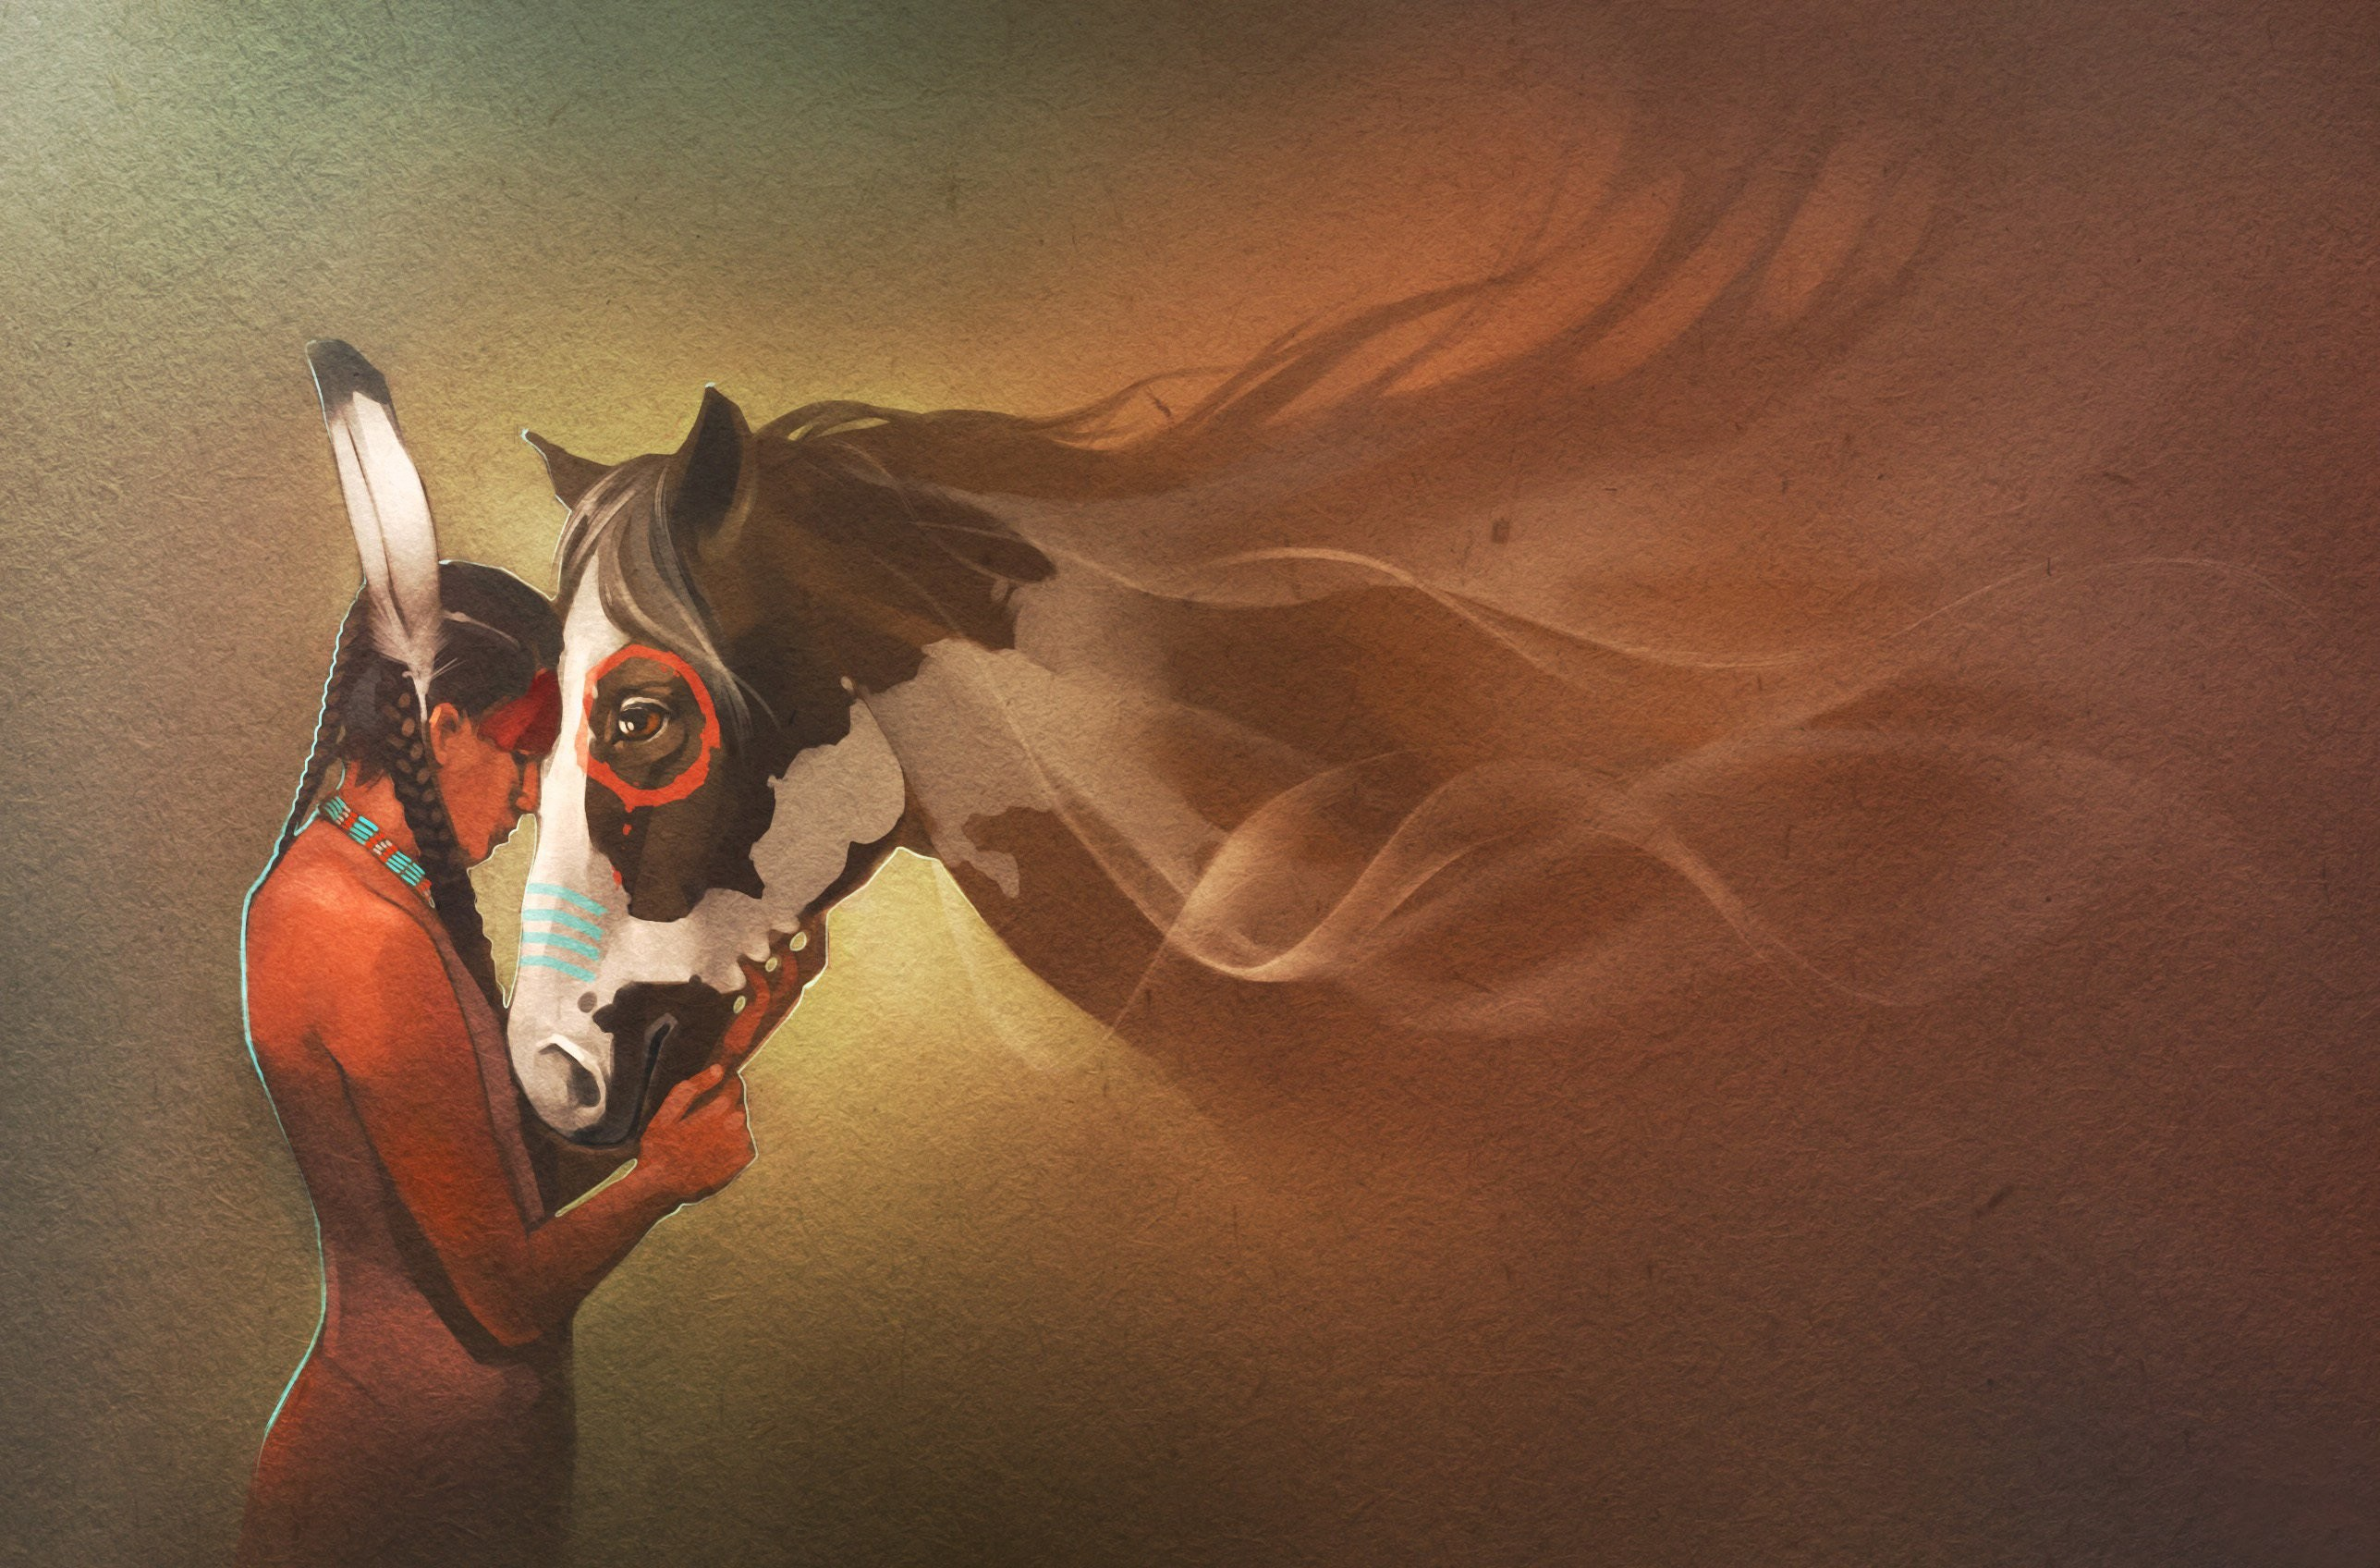 Indian Horse Wallpaper 51 images 2575x1696